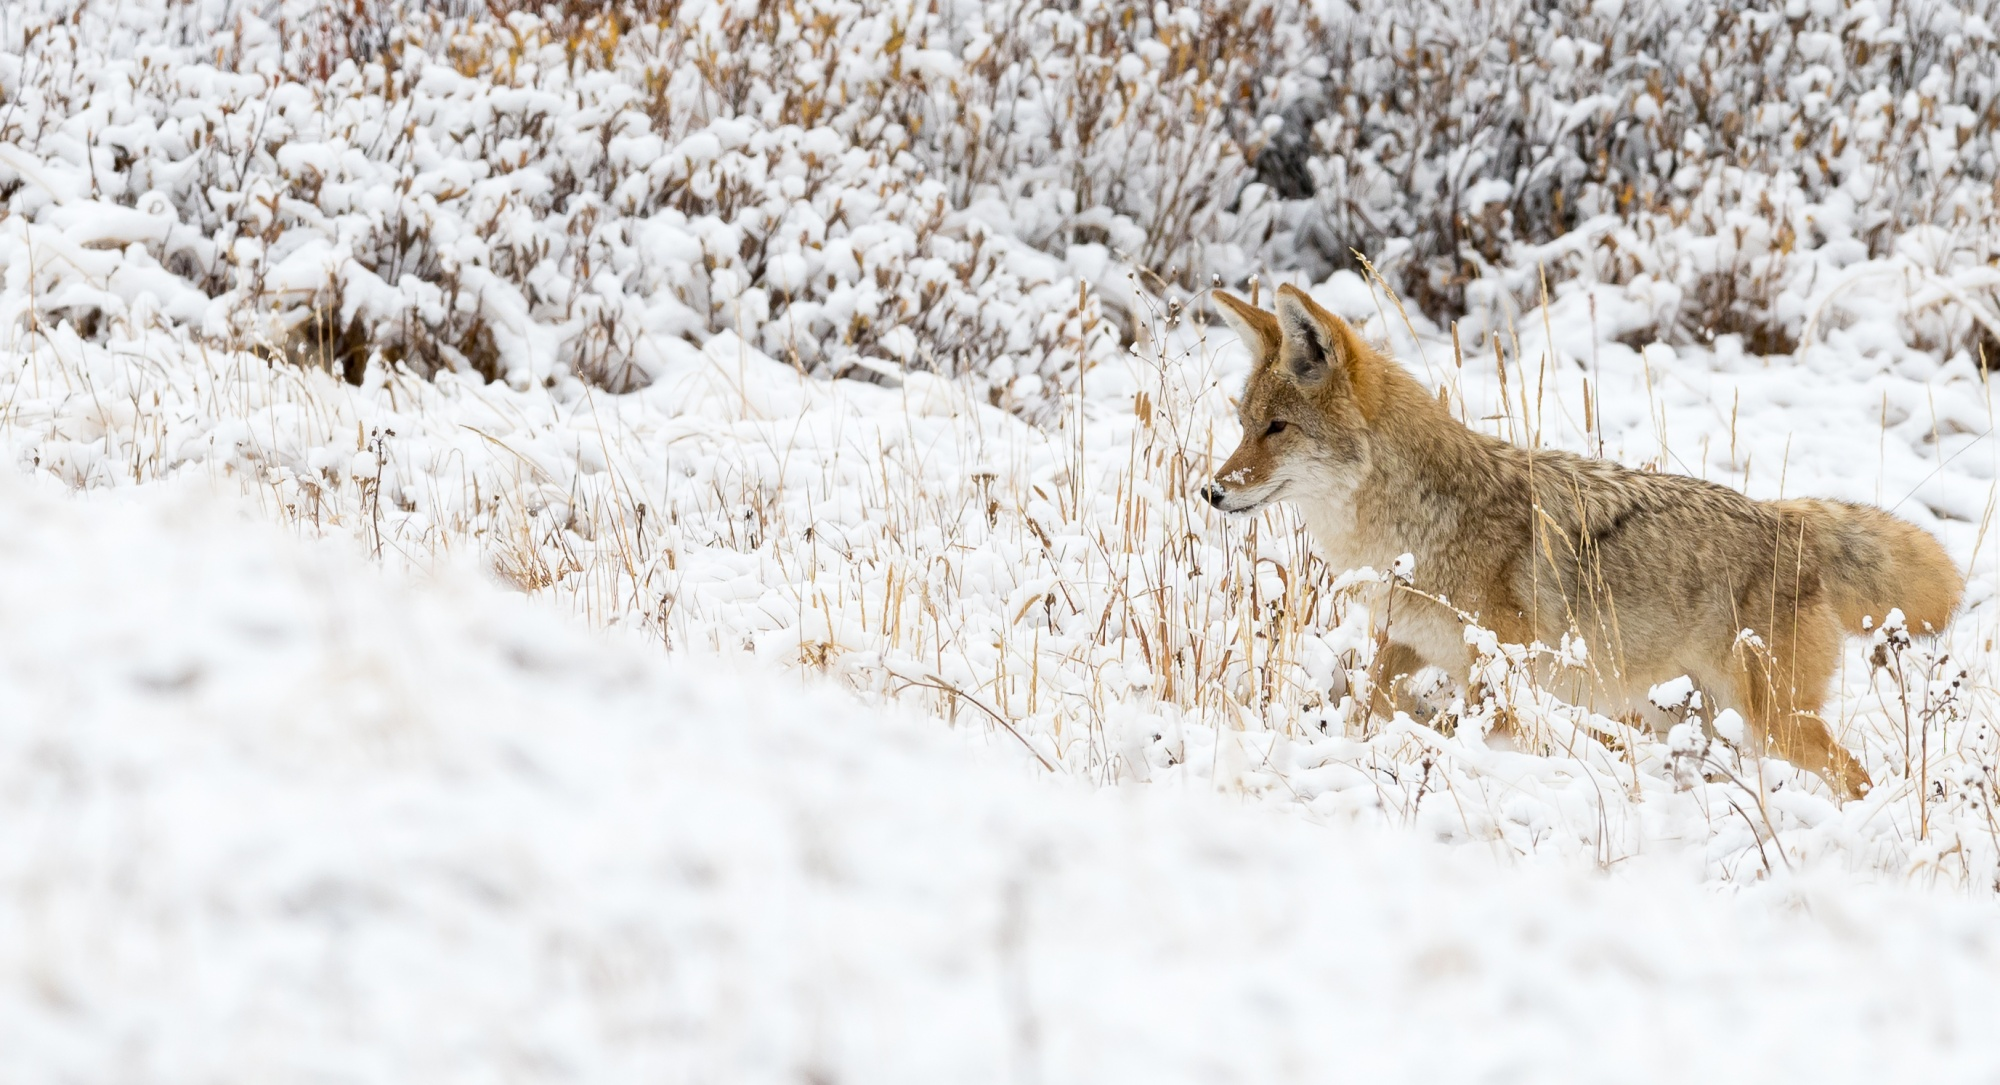 Yellowstone, a Wildlife Photographer's pilgrimage. – The Wildlife Photography Apprentice